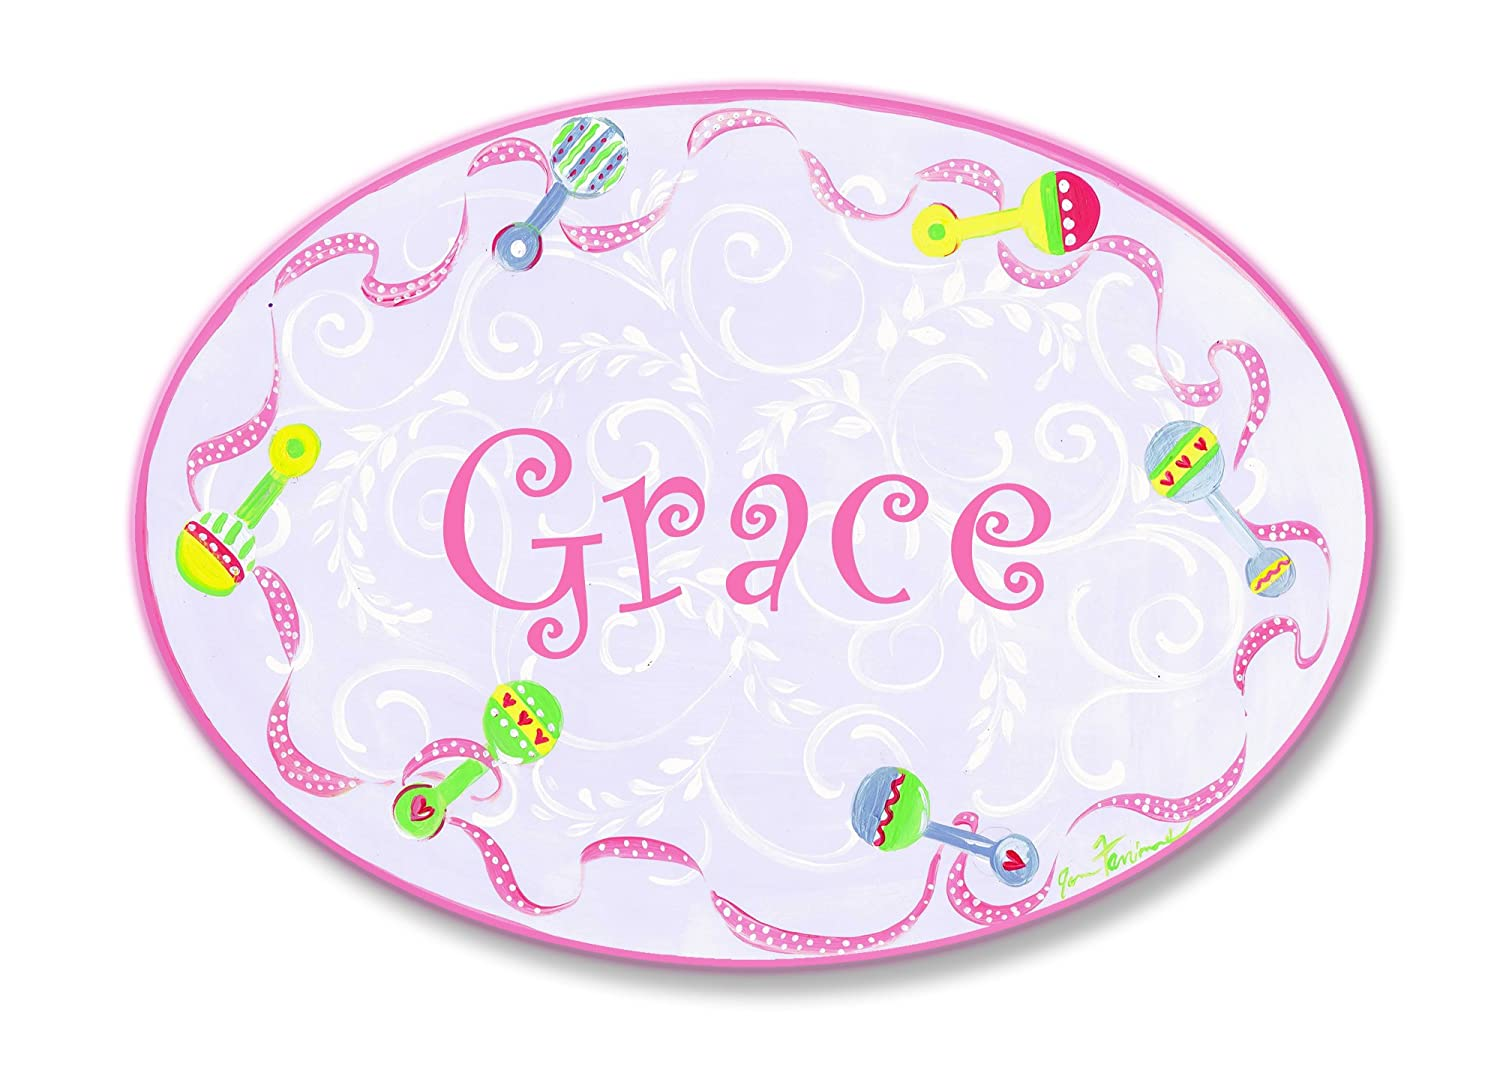 The Kids Room by Stupell Mia Pink with Multi-Colored Rattle Border Personalized Oval Wall Plaque pnp-947m